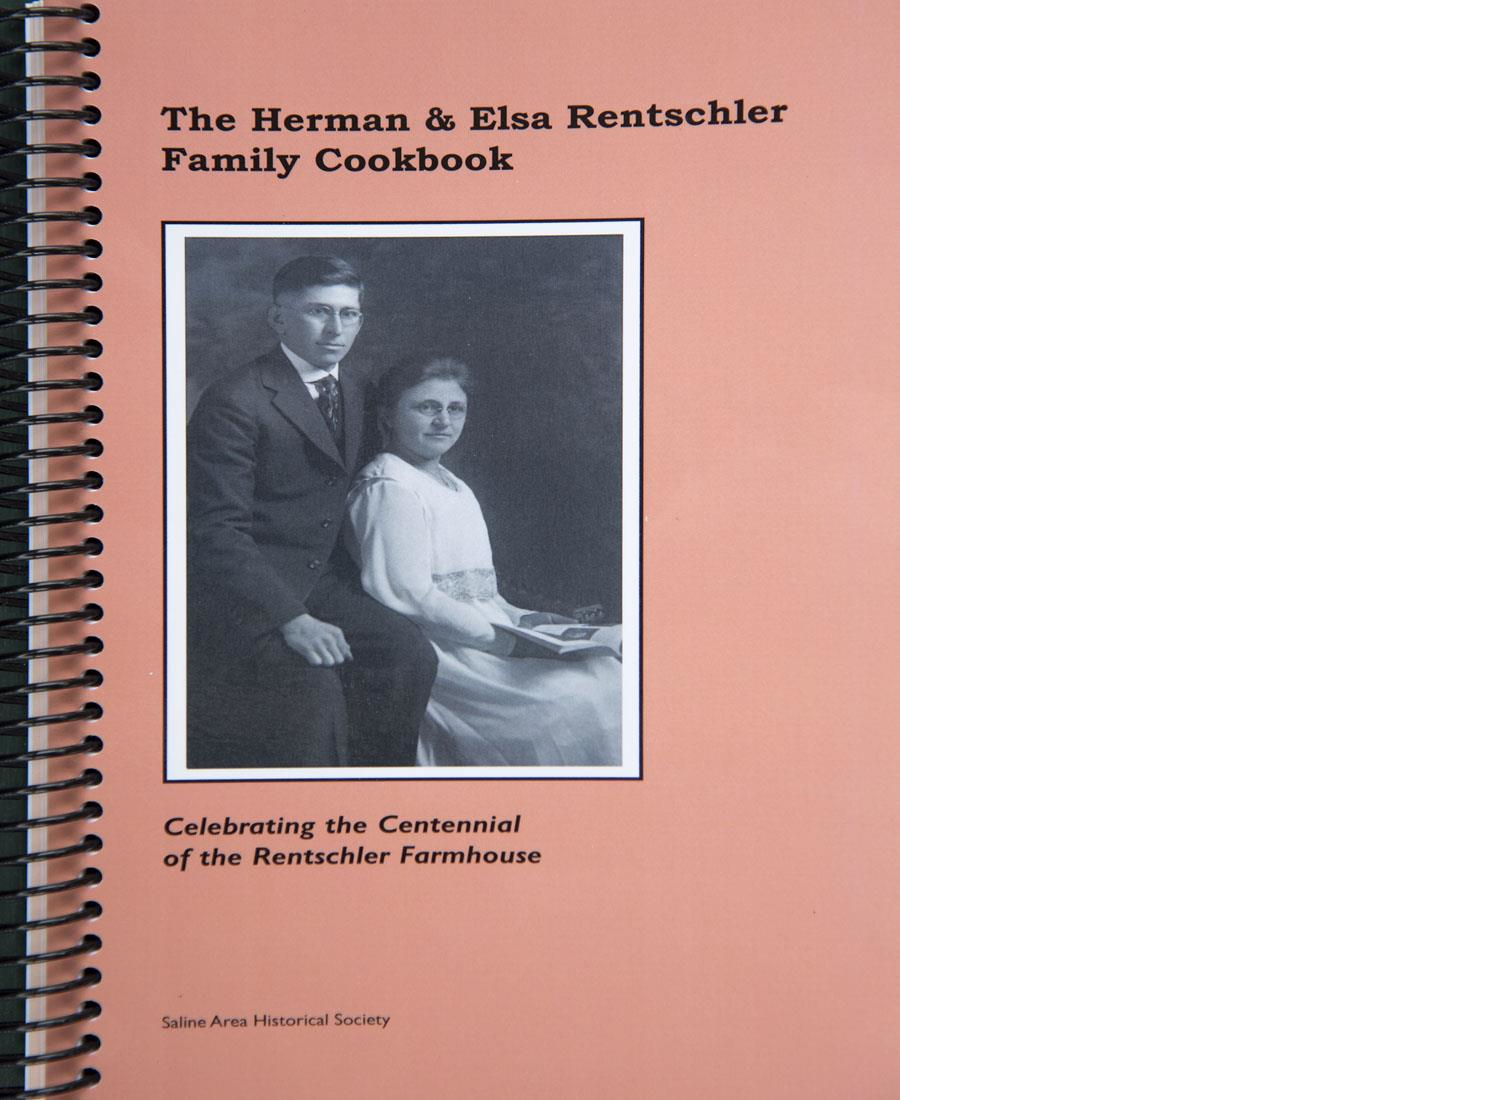 HERMAN & ELSA RENTSCHLER FAMILY COOKBOOK